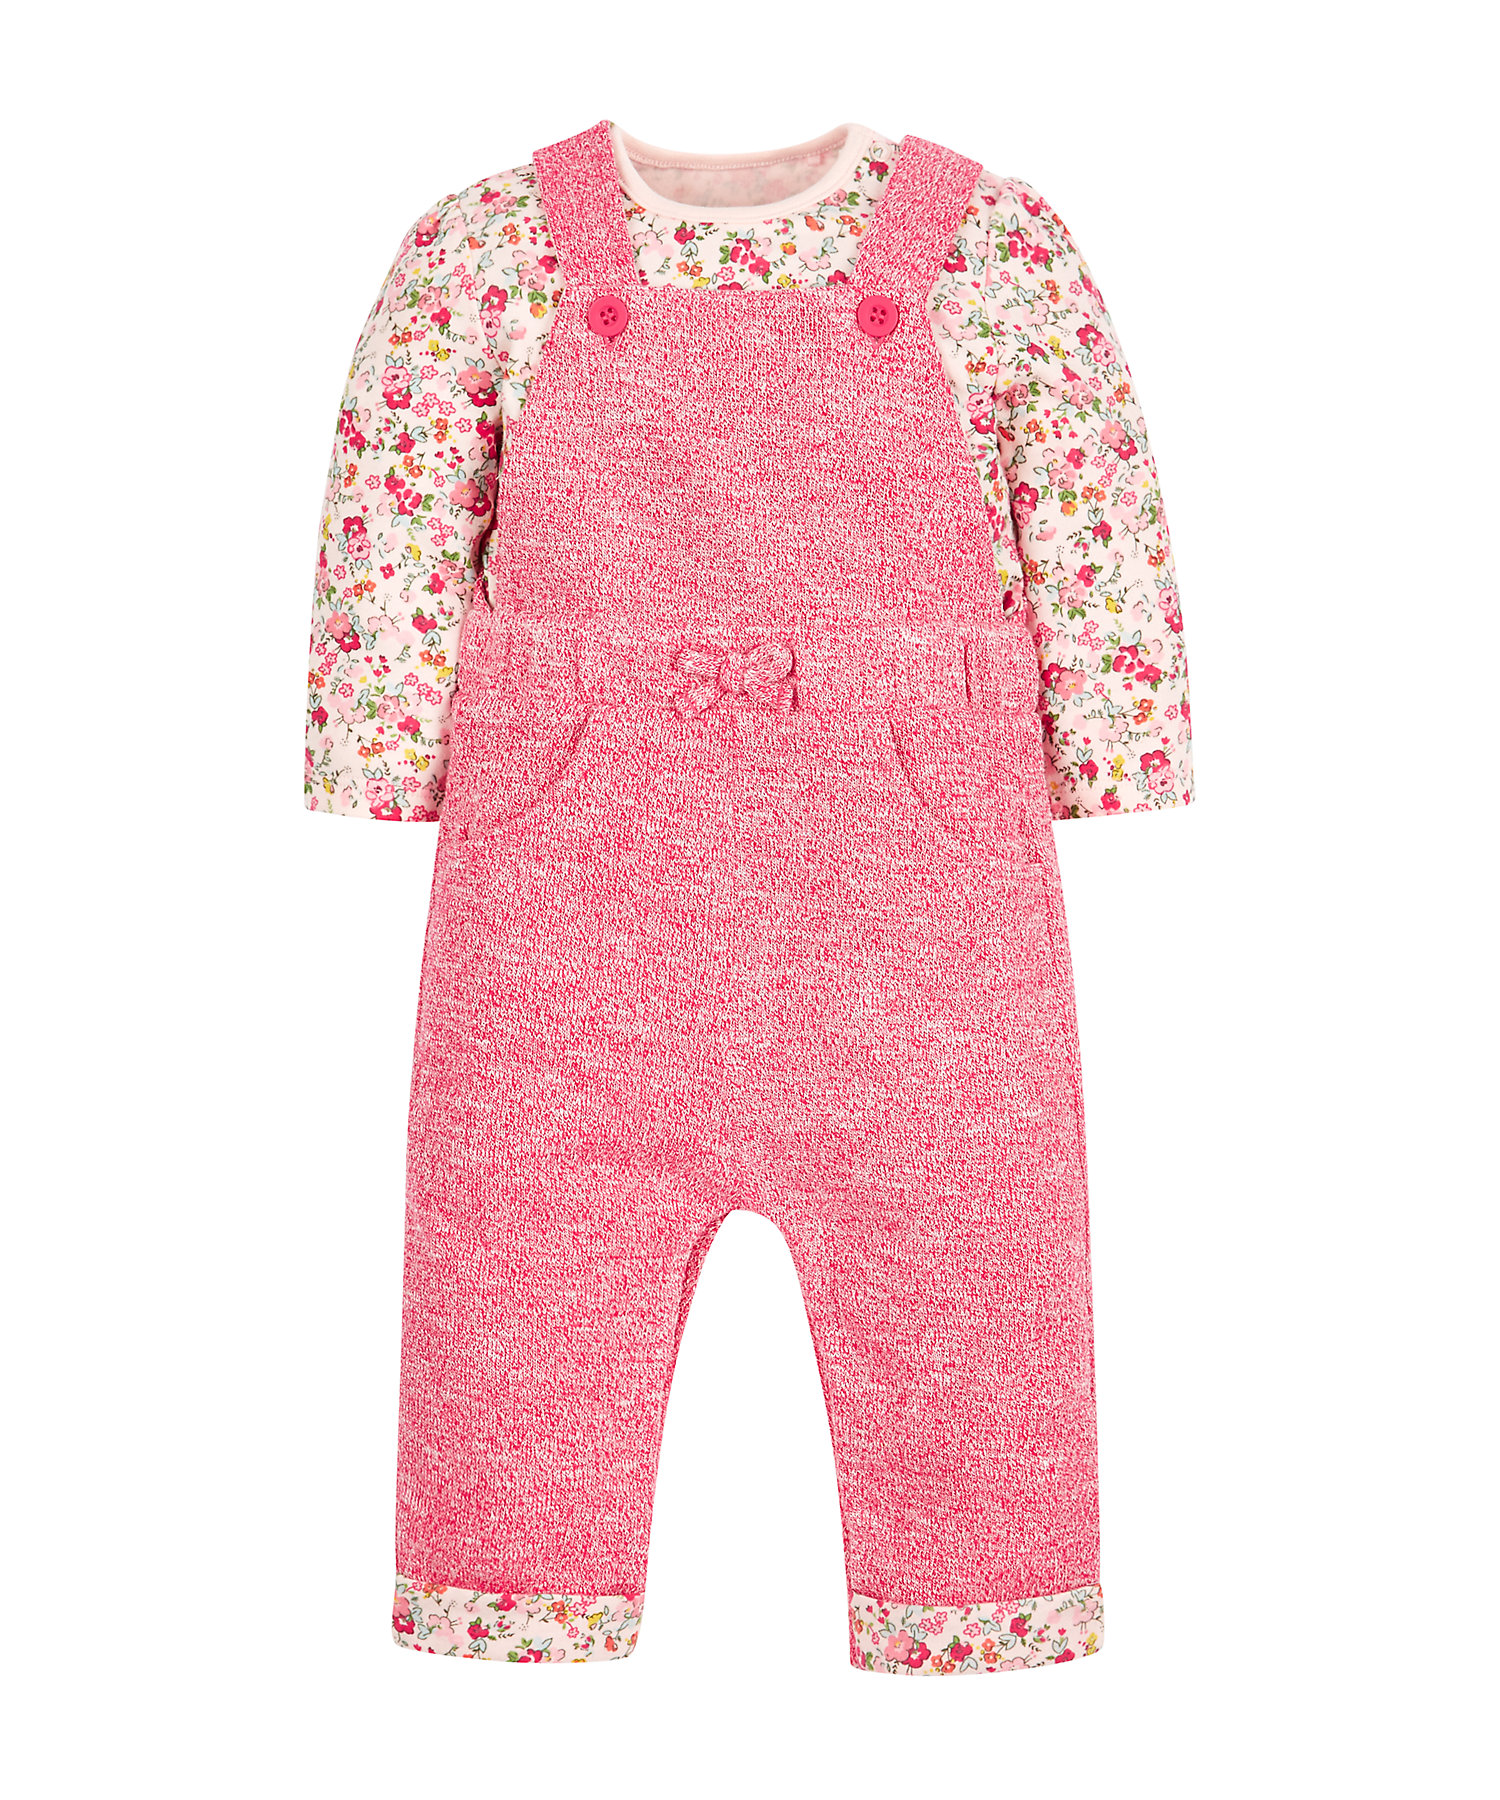 Mothercare   Girls Full Sleeves Dungaree And Bodysuit Set Floral Print - Pink